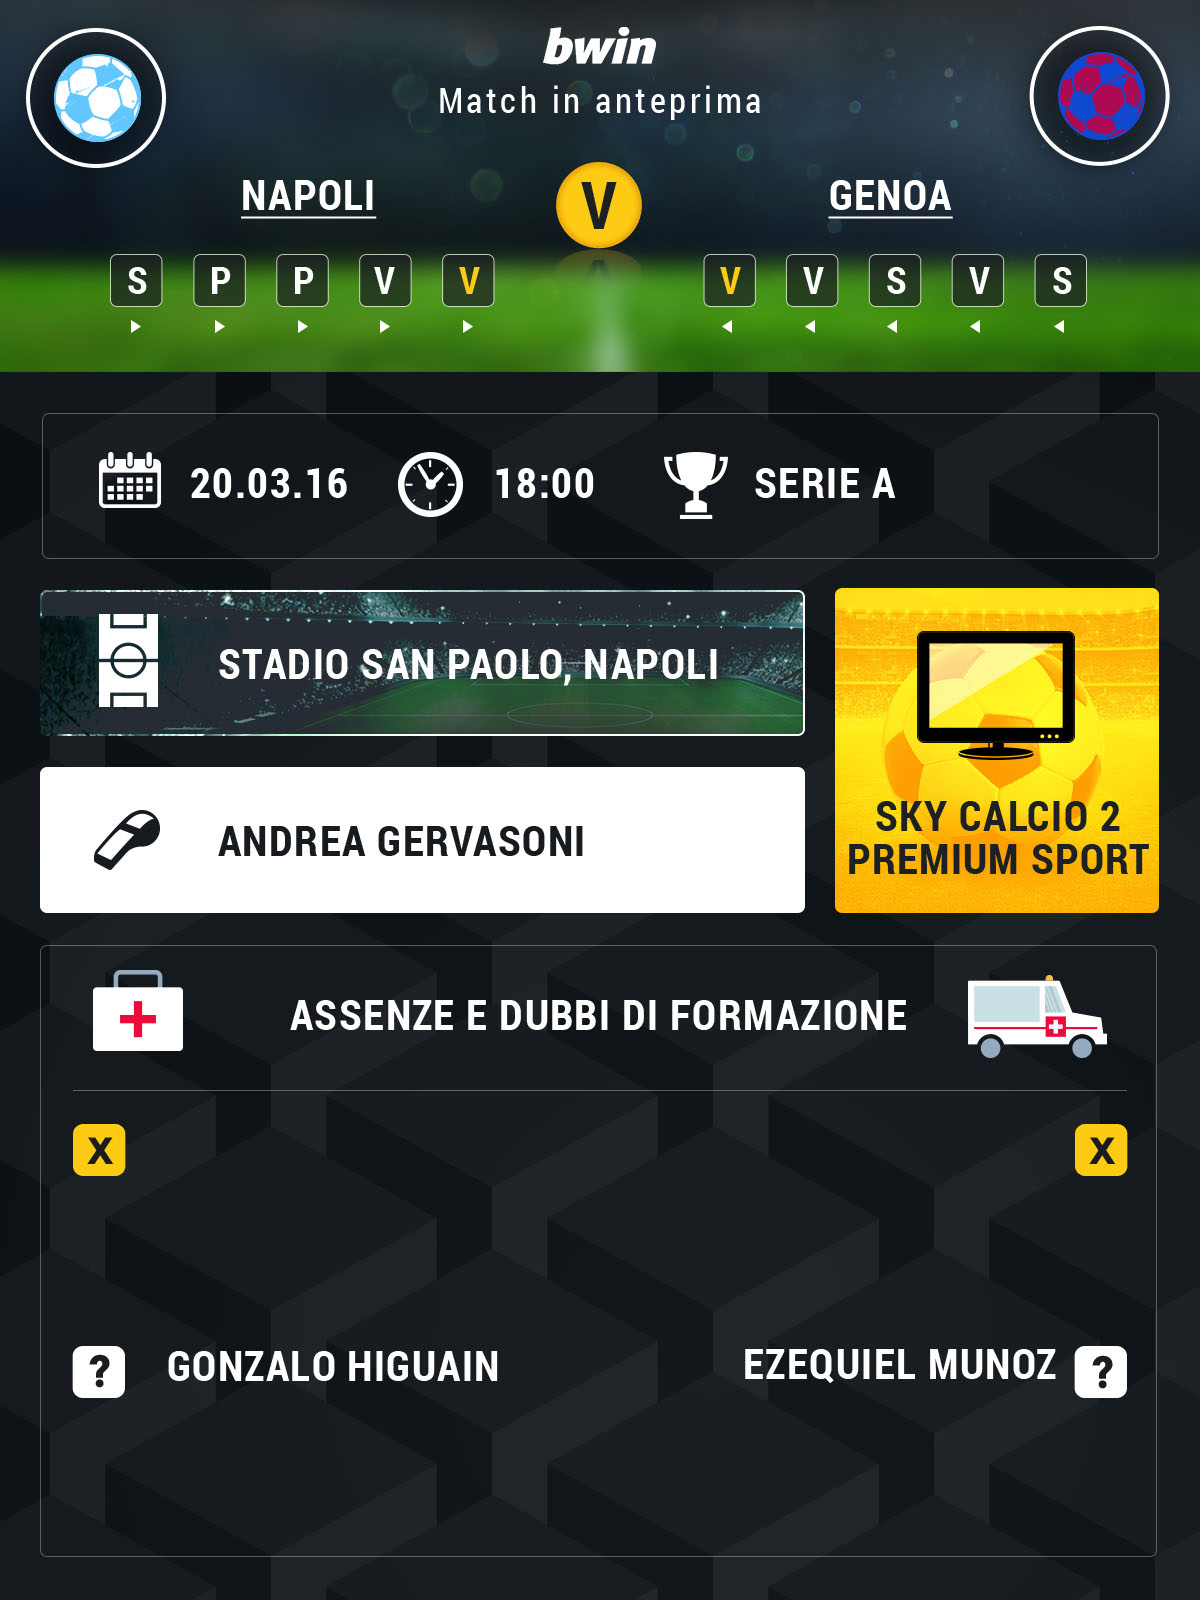 Napoli-Genoa preview